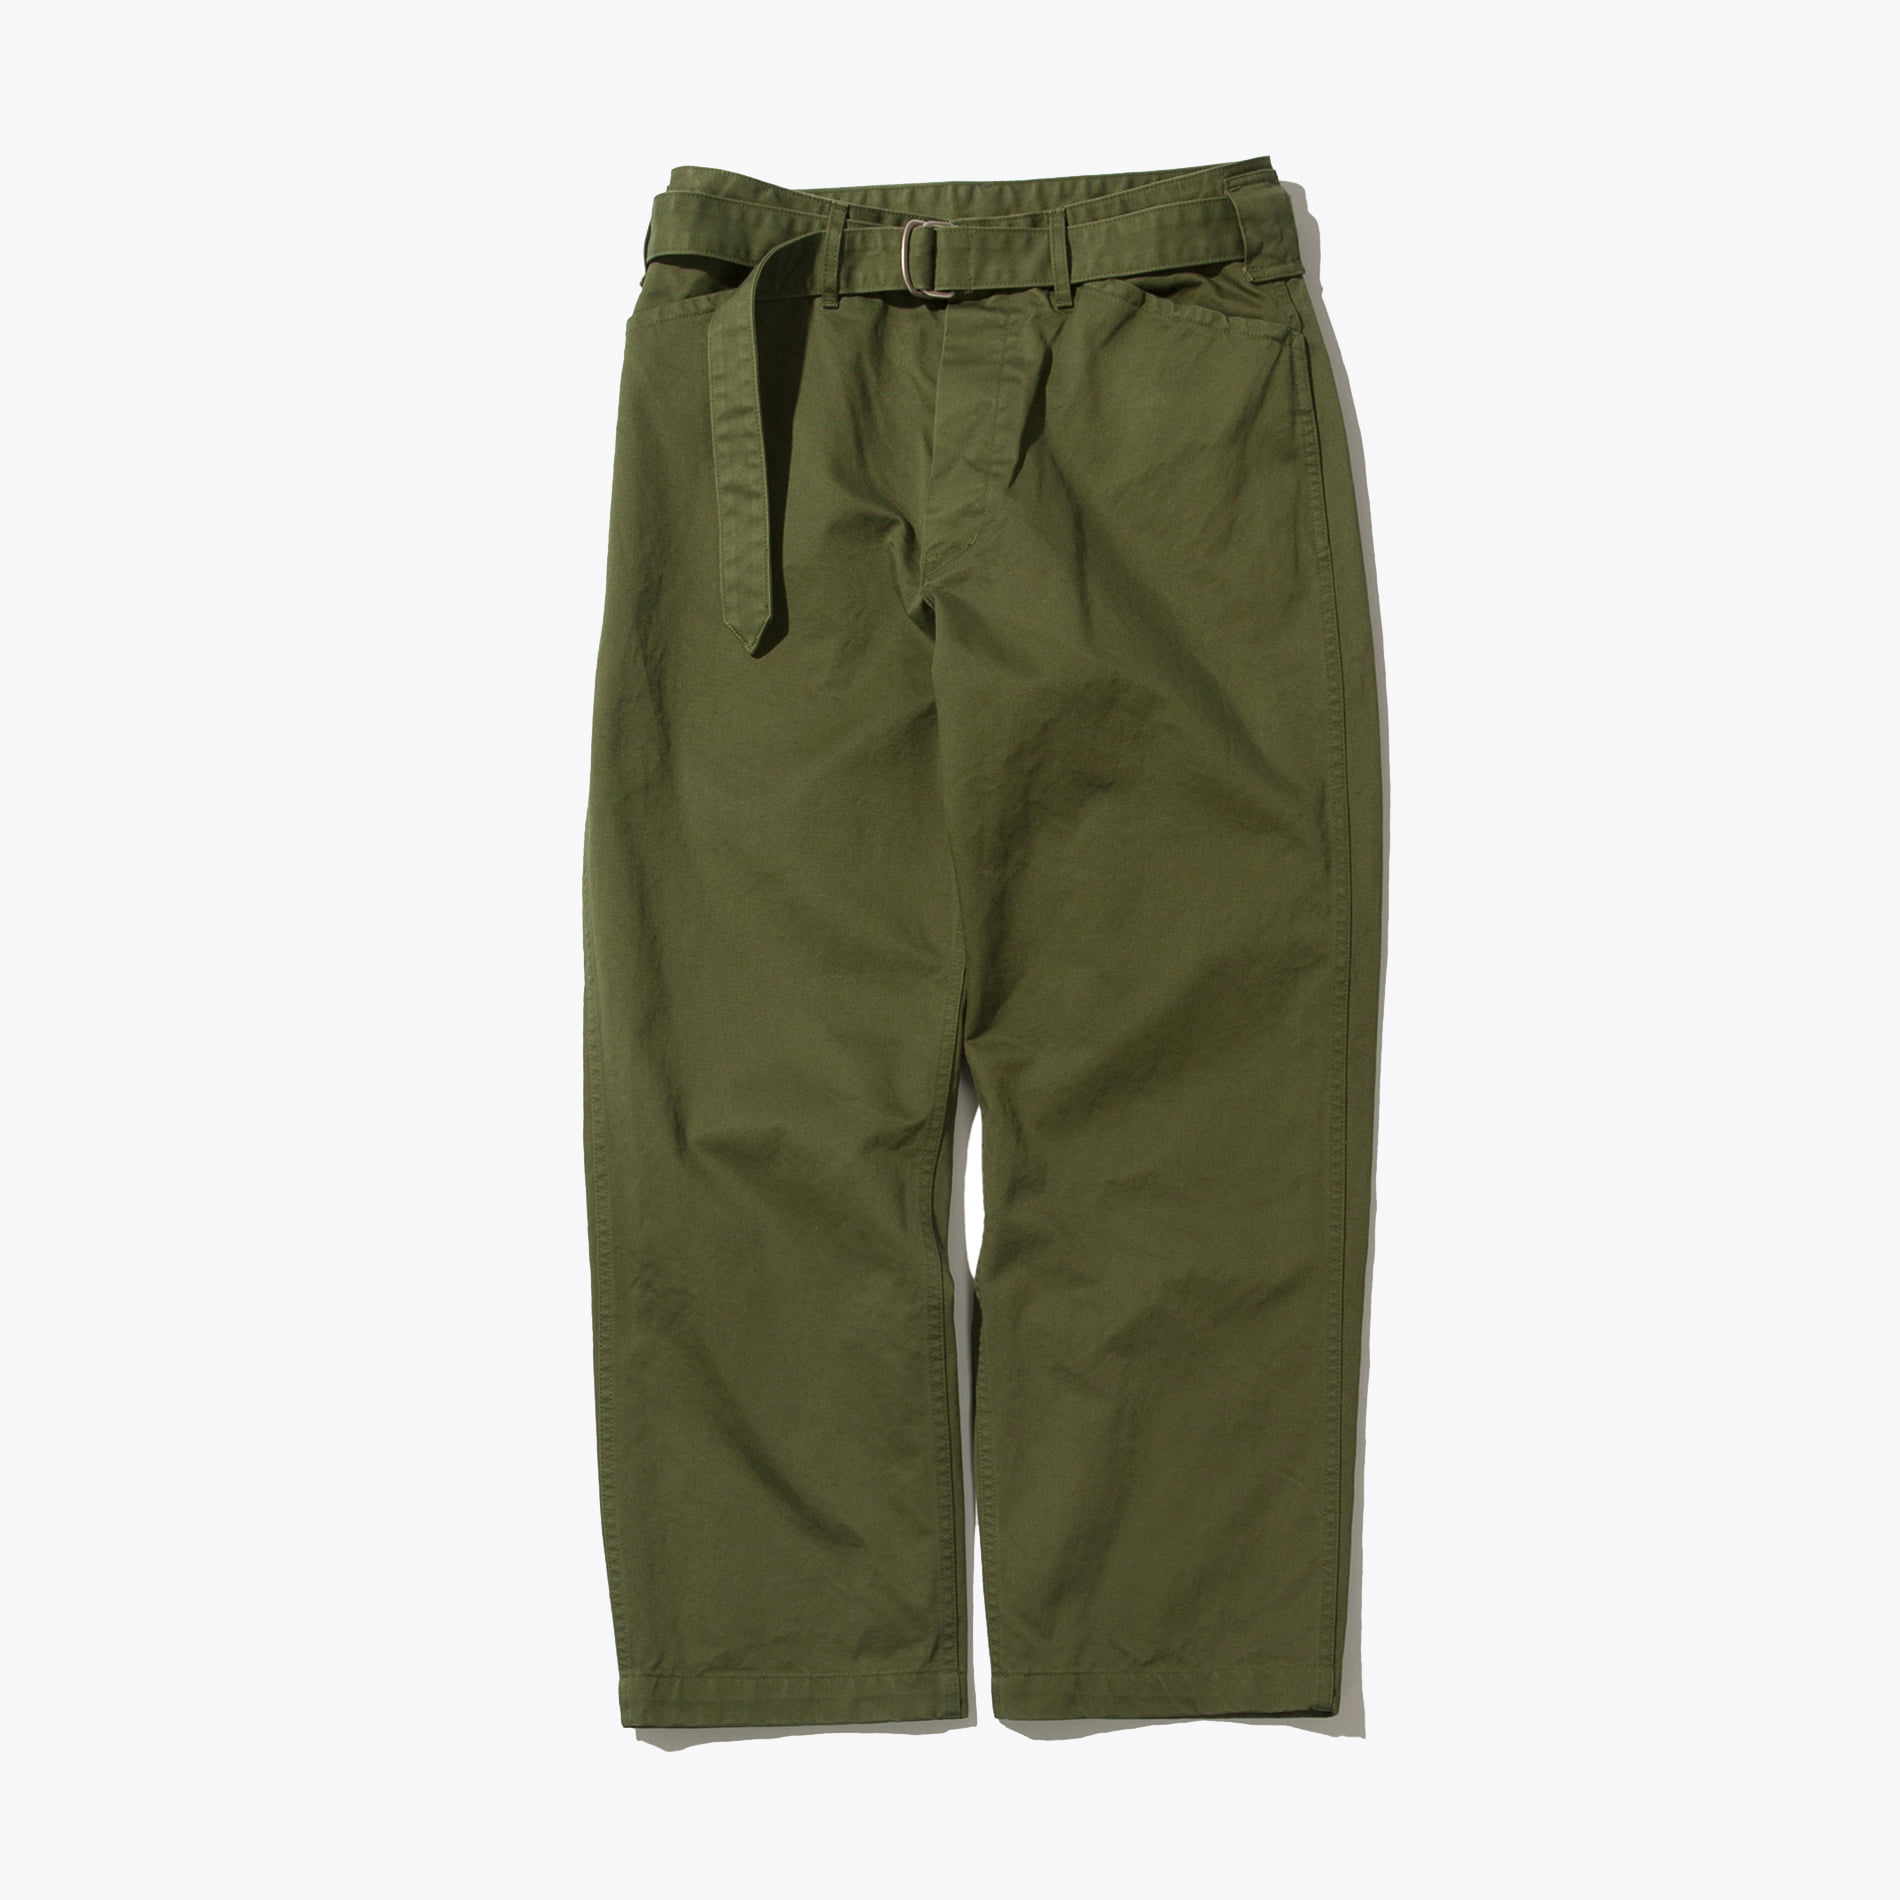 BELTED FATIGUE PANTS OLIVE